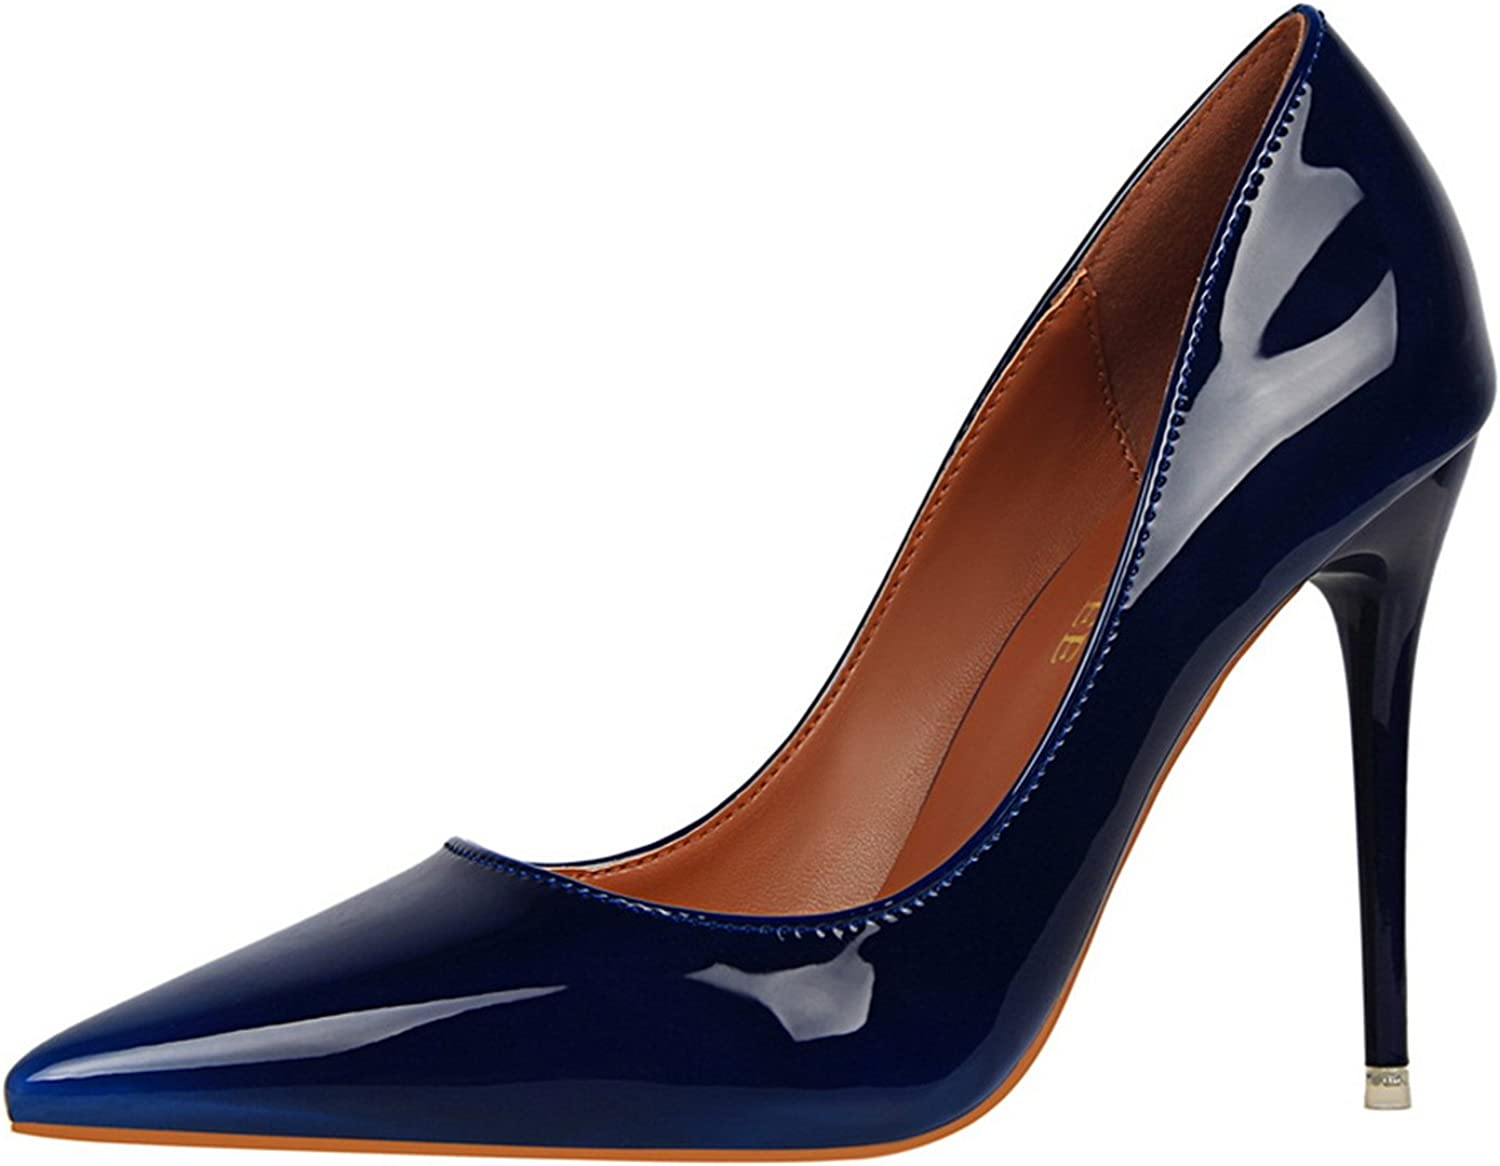 Gome-z Size34-39 Women Pumps High Heels Patent Leather Royal bluee Green Red New Super Sexy Brand Female shoes Zapatillas women 10cm